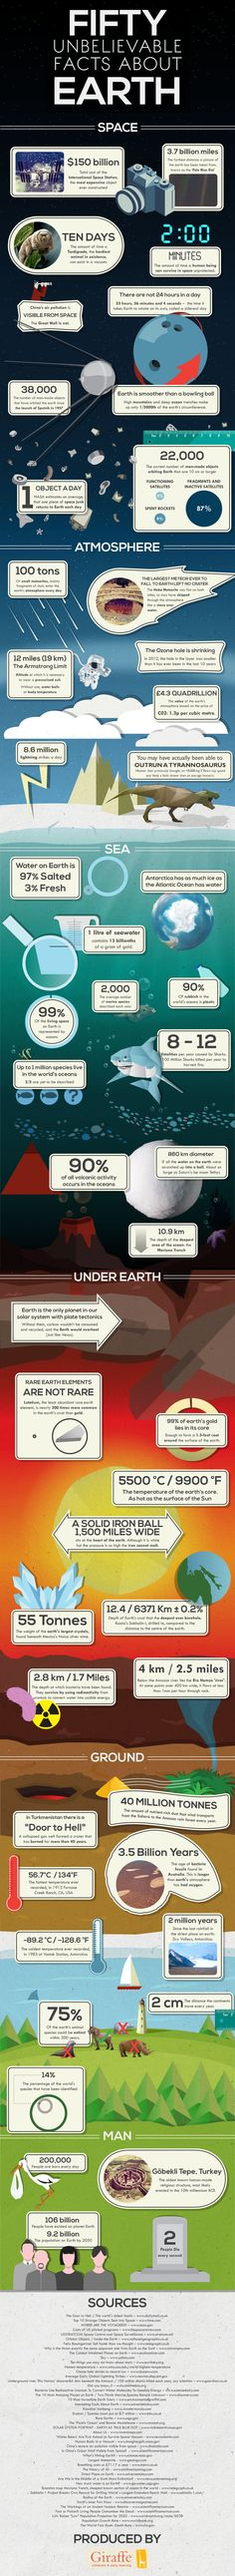 50 Unbelievable Facts About Earth -- info graphic, #teaching #space #science